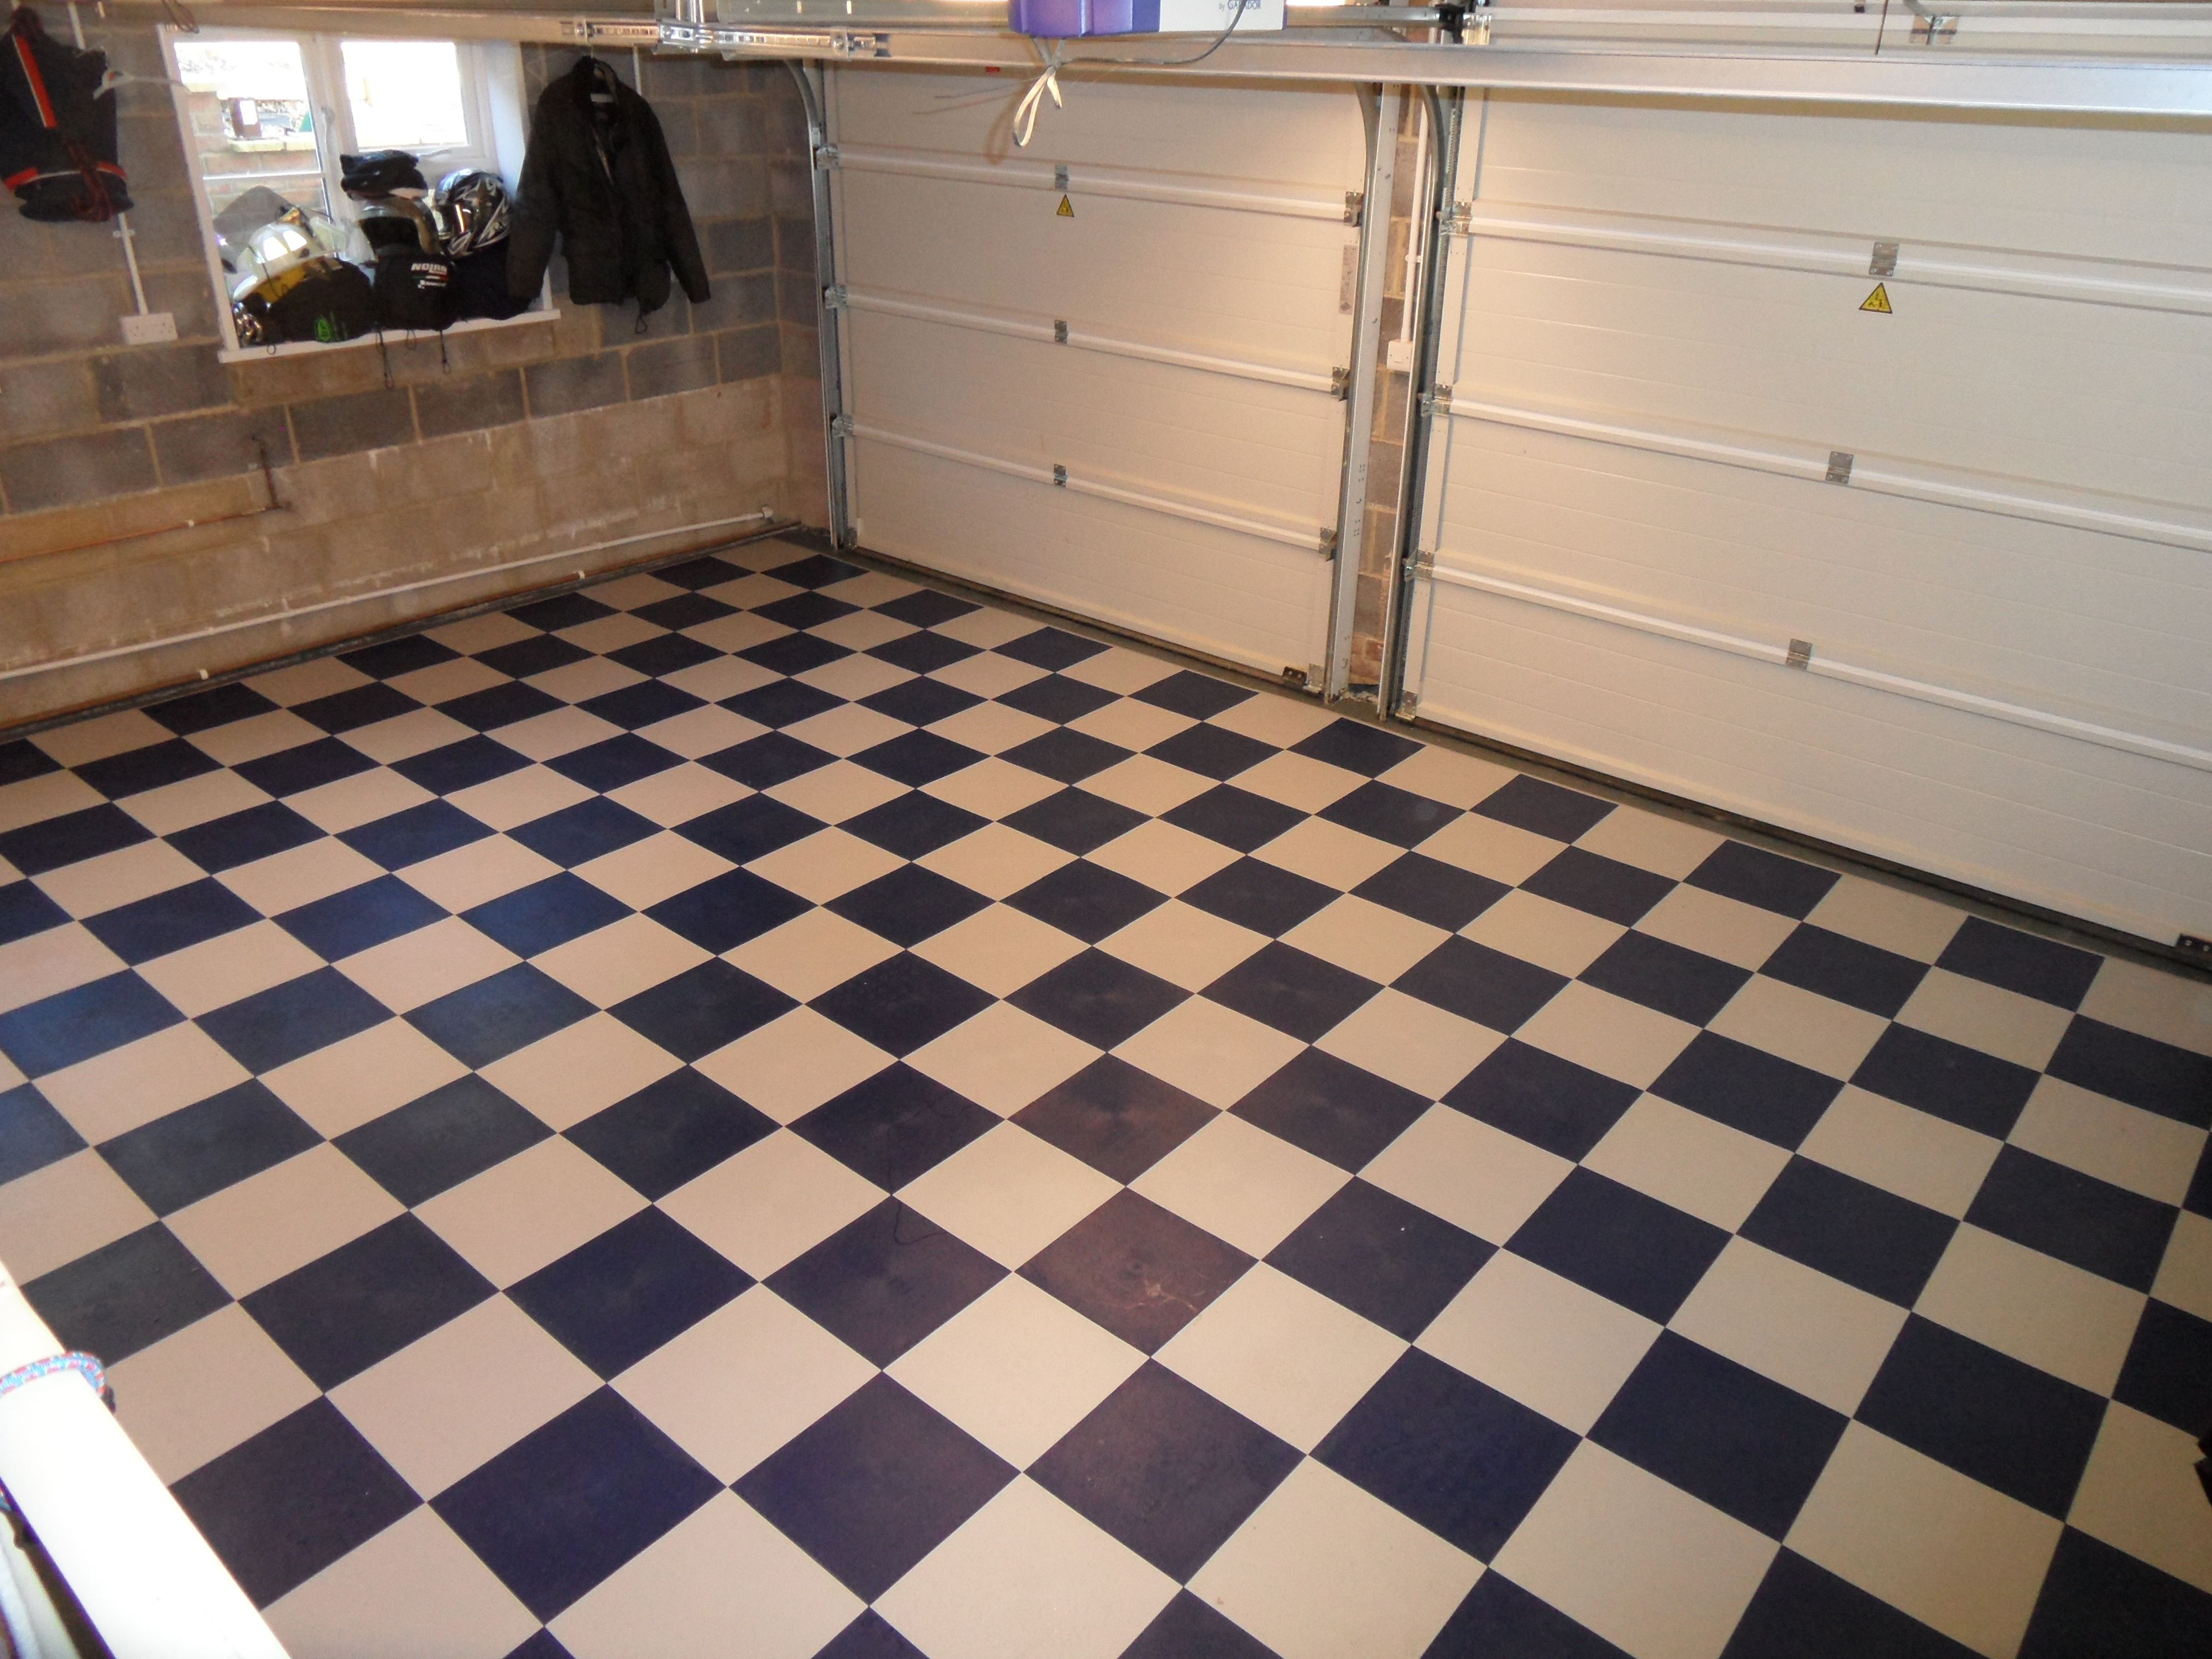 Tile for garage fresh build home design picture tile for tile for garage fresh build home design picture tile for garage pinterest flooring ideas men cave and house dailygadgetfo Images